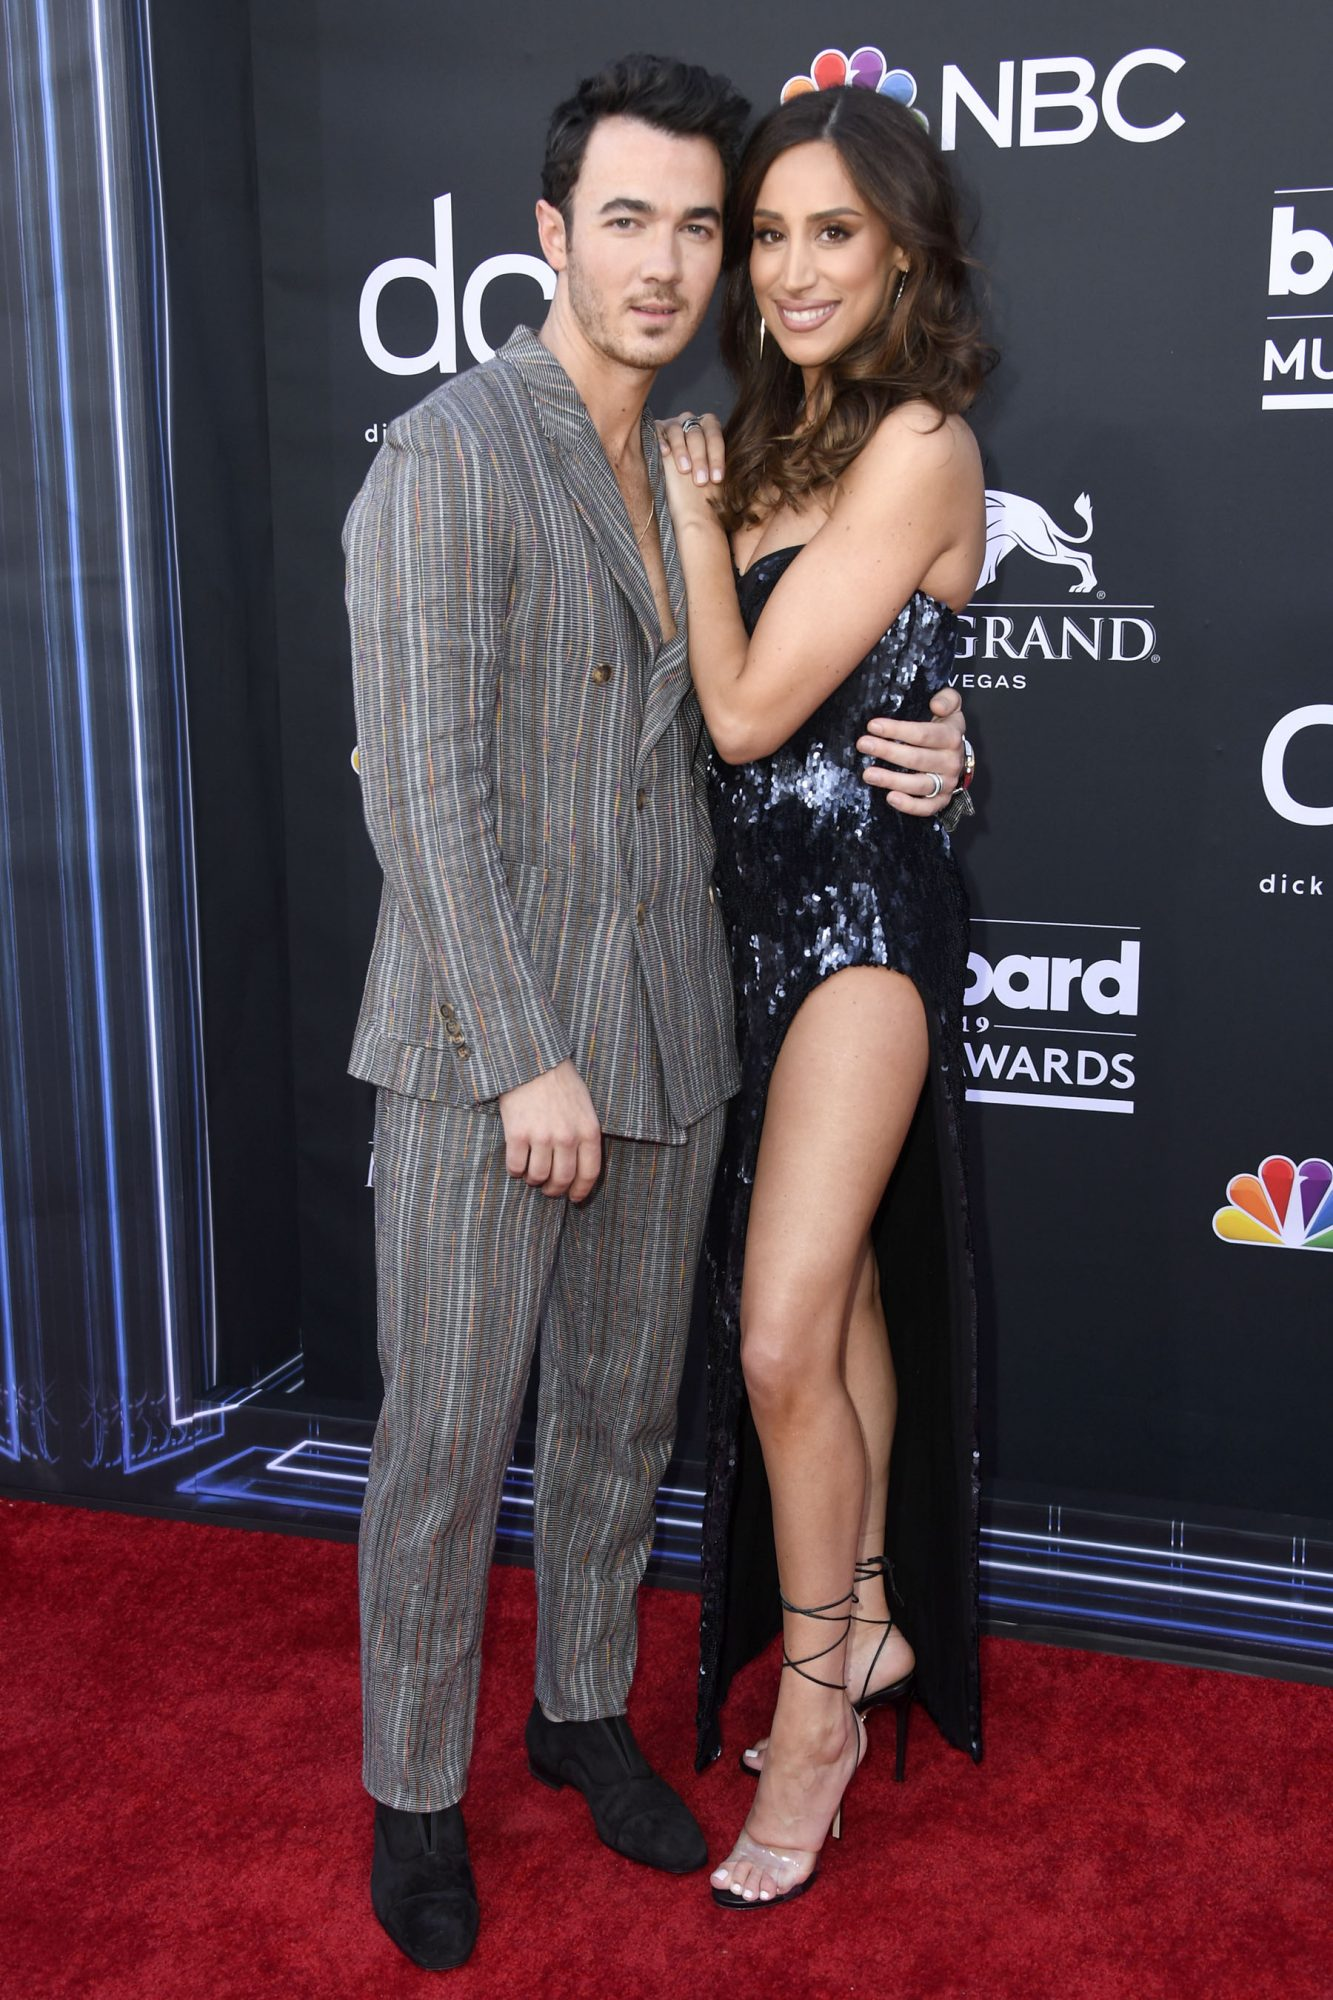 LAS VEGAS, NEVADA - MAY 01: (L-R) Kevin Jonas of Jonas Brothers ans Danielle Jonas attend the 2019 Billboard Music Awards at MGM Grand Garden Arena on May 01, 2019 in Las Vegas, Nevada. (Photo by Frazer Harrison/Getty Images)